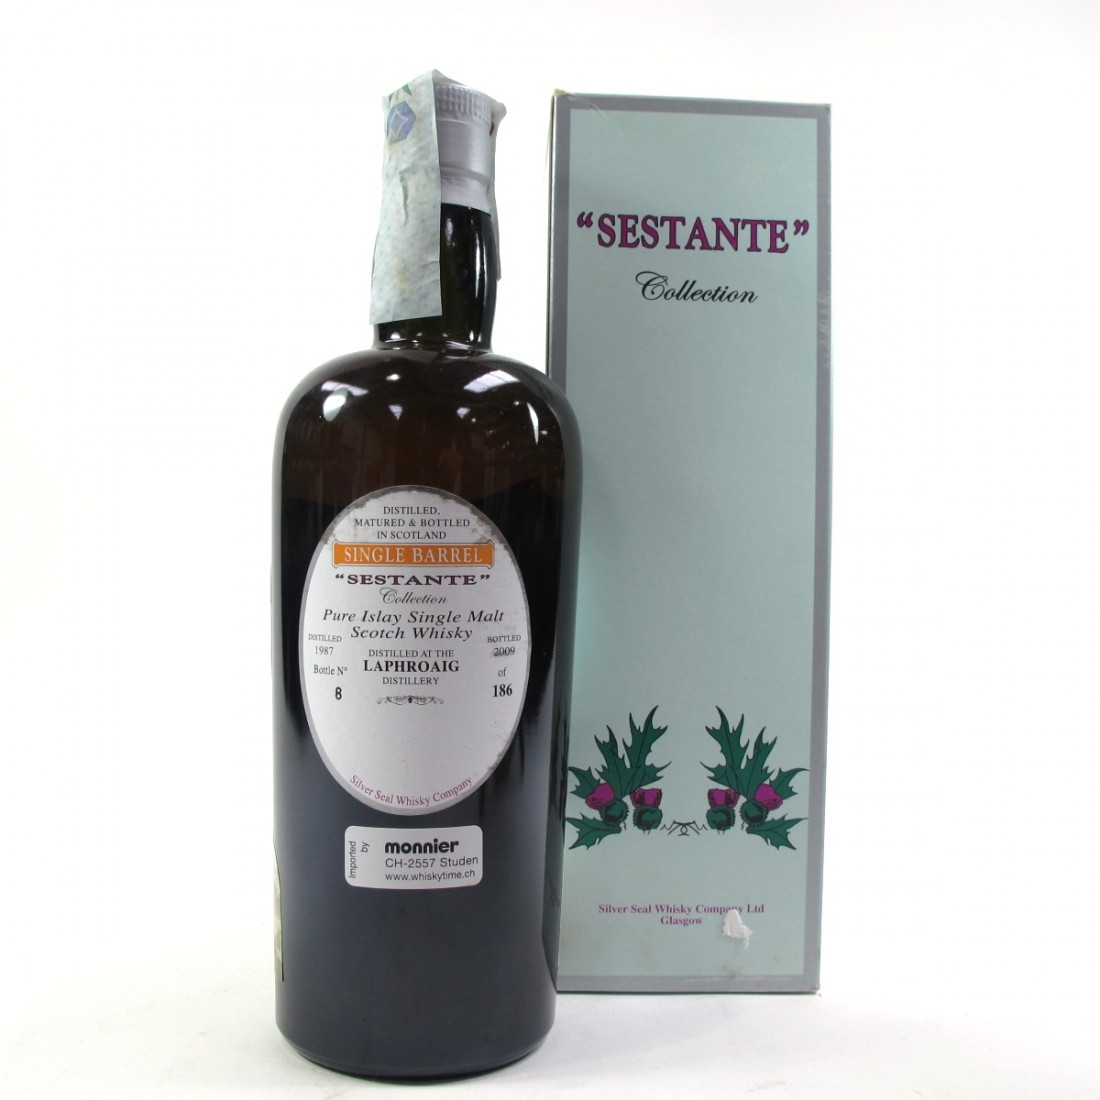 Laphroaig 1987 Silver Seal 22 Year Old Sestante